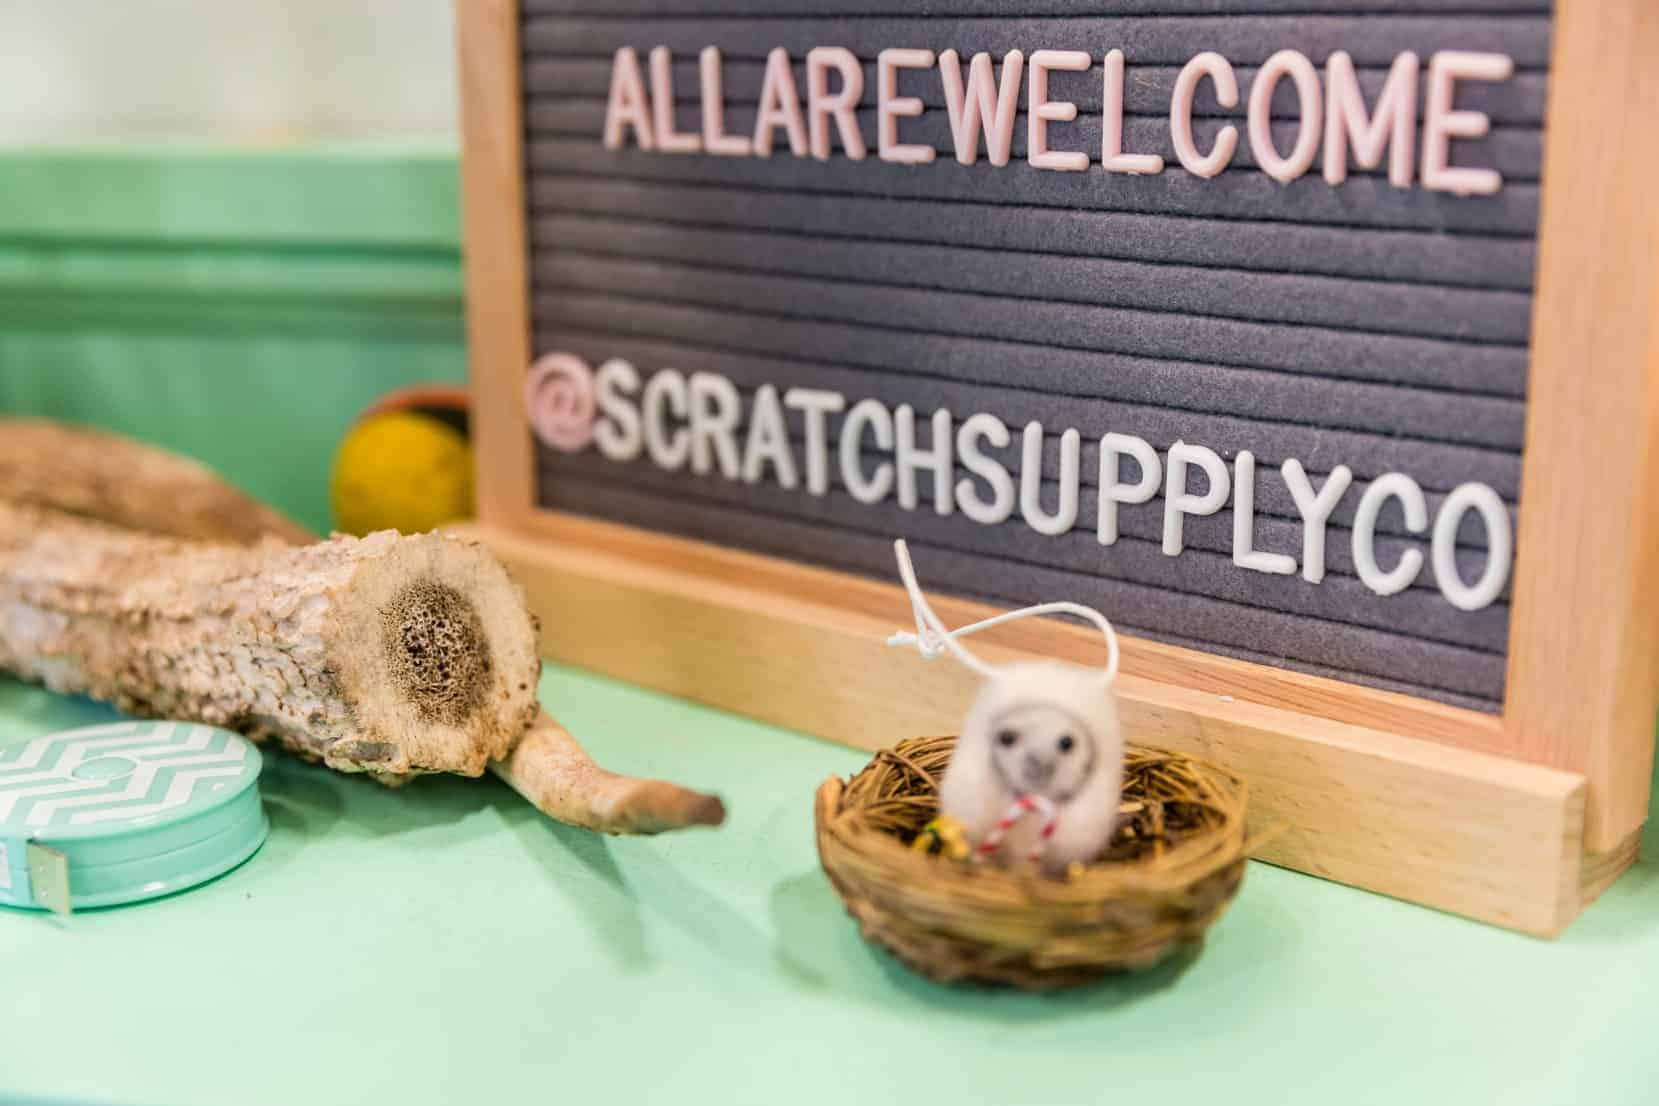 A letter sign that reads ALLAREWELCOME and @SCRATCHSUPPLYCO in pink and white.